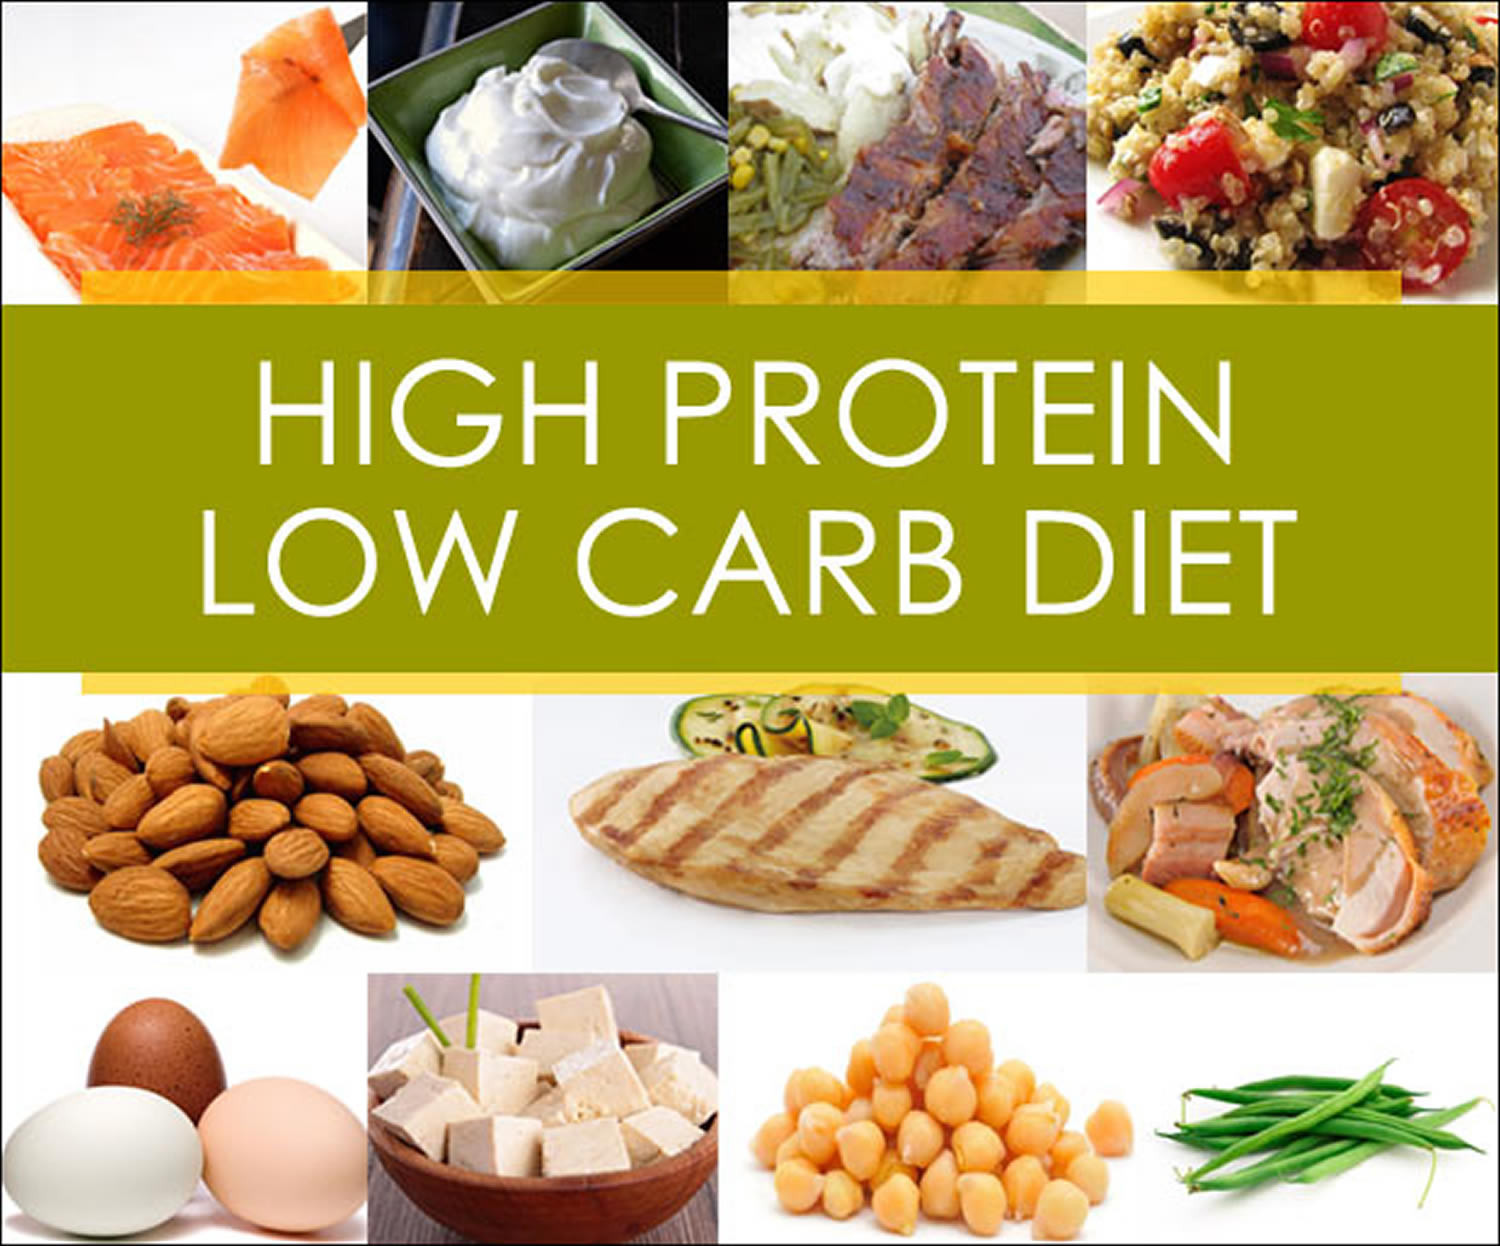 High Protein Low Carb Diet  High Protein Low Carb Diet for Weight Loss What Are The